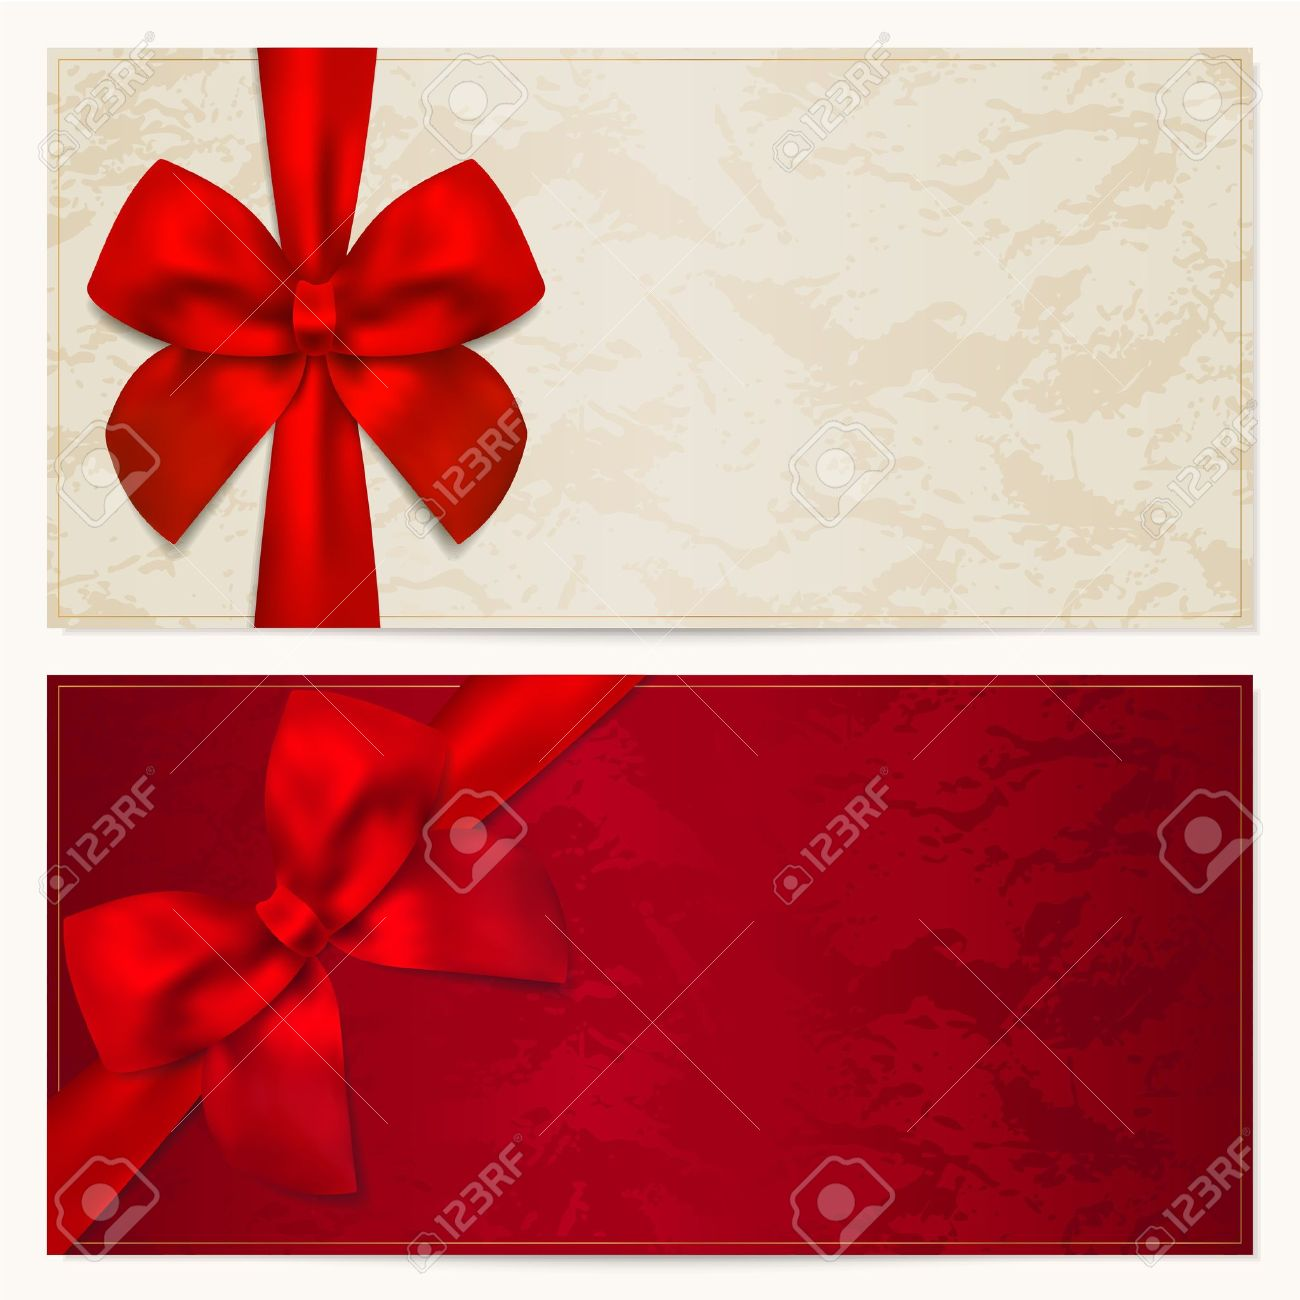 voucher template floral pattern border and gift red bow vector voucher template floral pattern border and gift red bow ribbons this background design usable for gift voucher coupon invitation